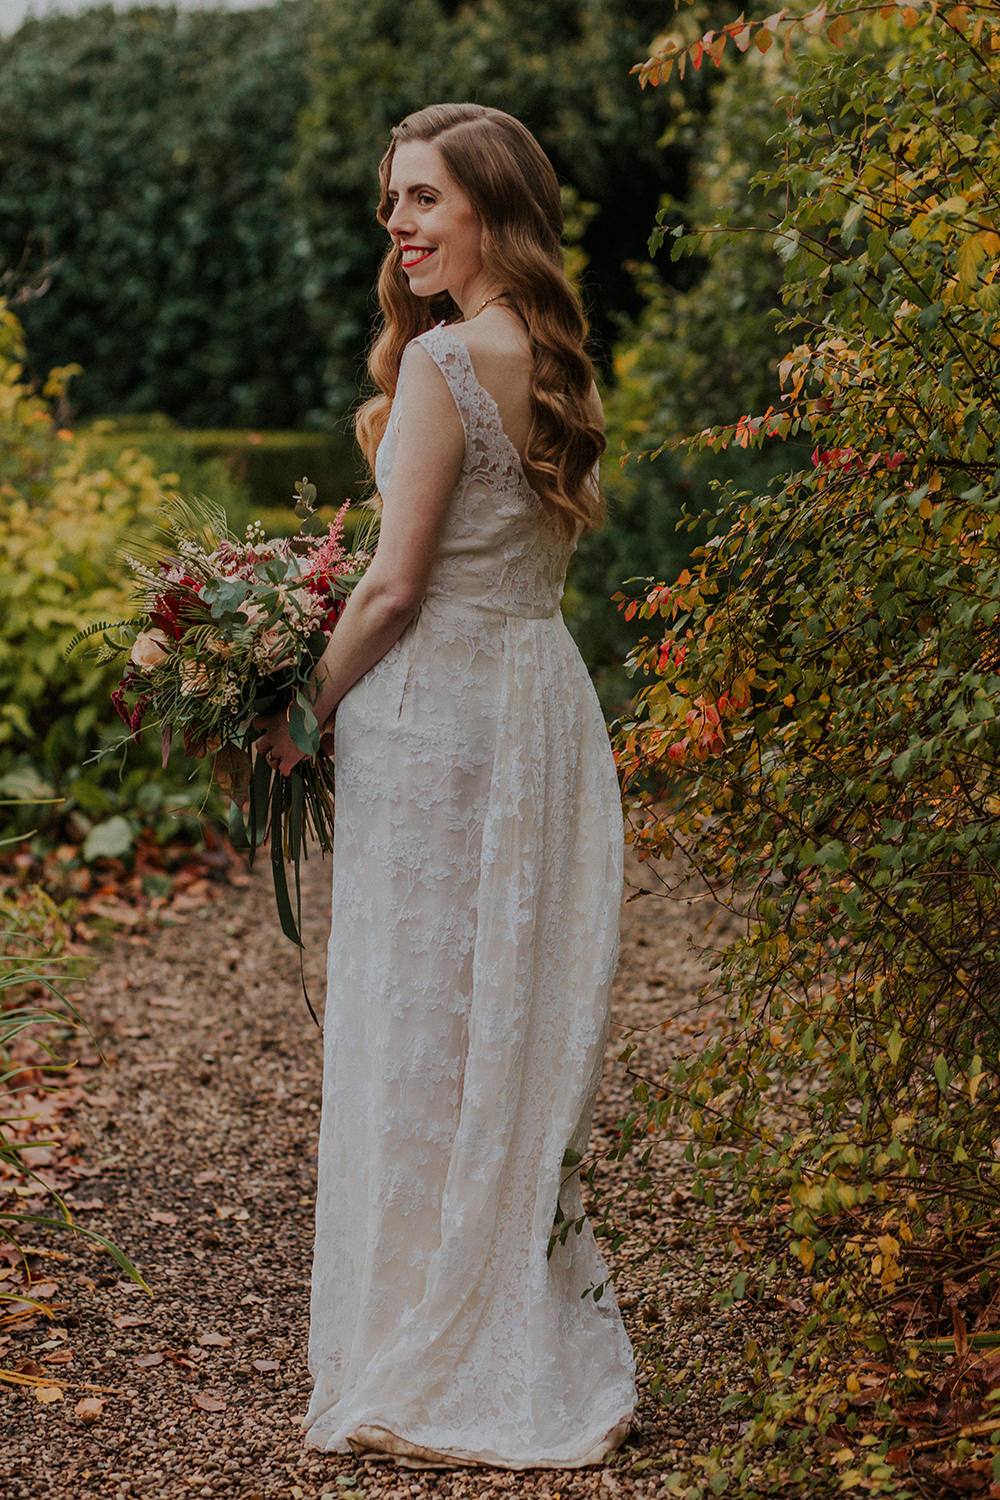 Bride Bridal Dress Gown Vintage Lace Simple Autumn Wedding Maddie Farris Photography